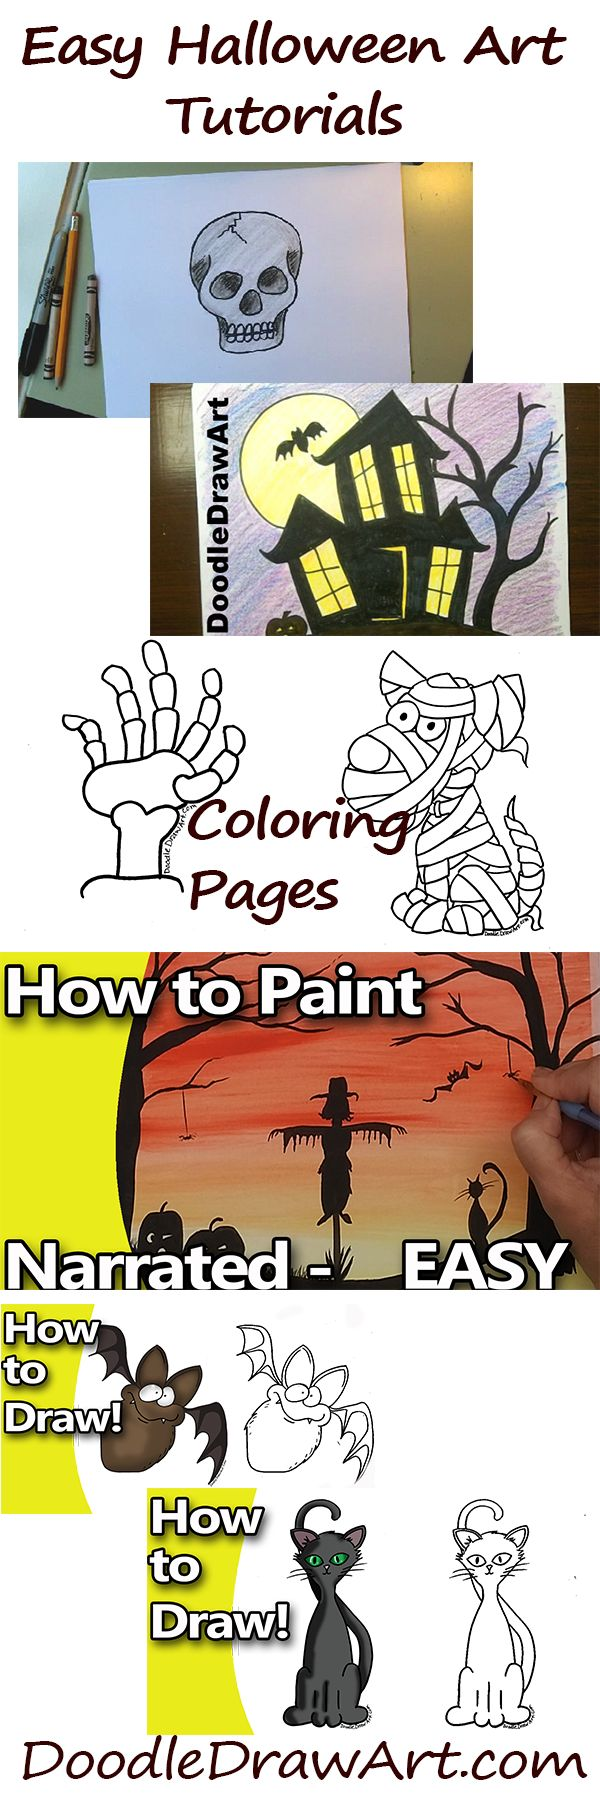 11 best halloween drawing and art ideas images on pinterest